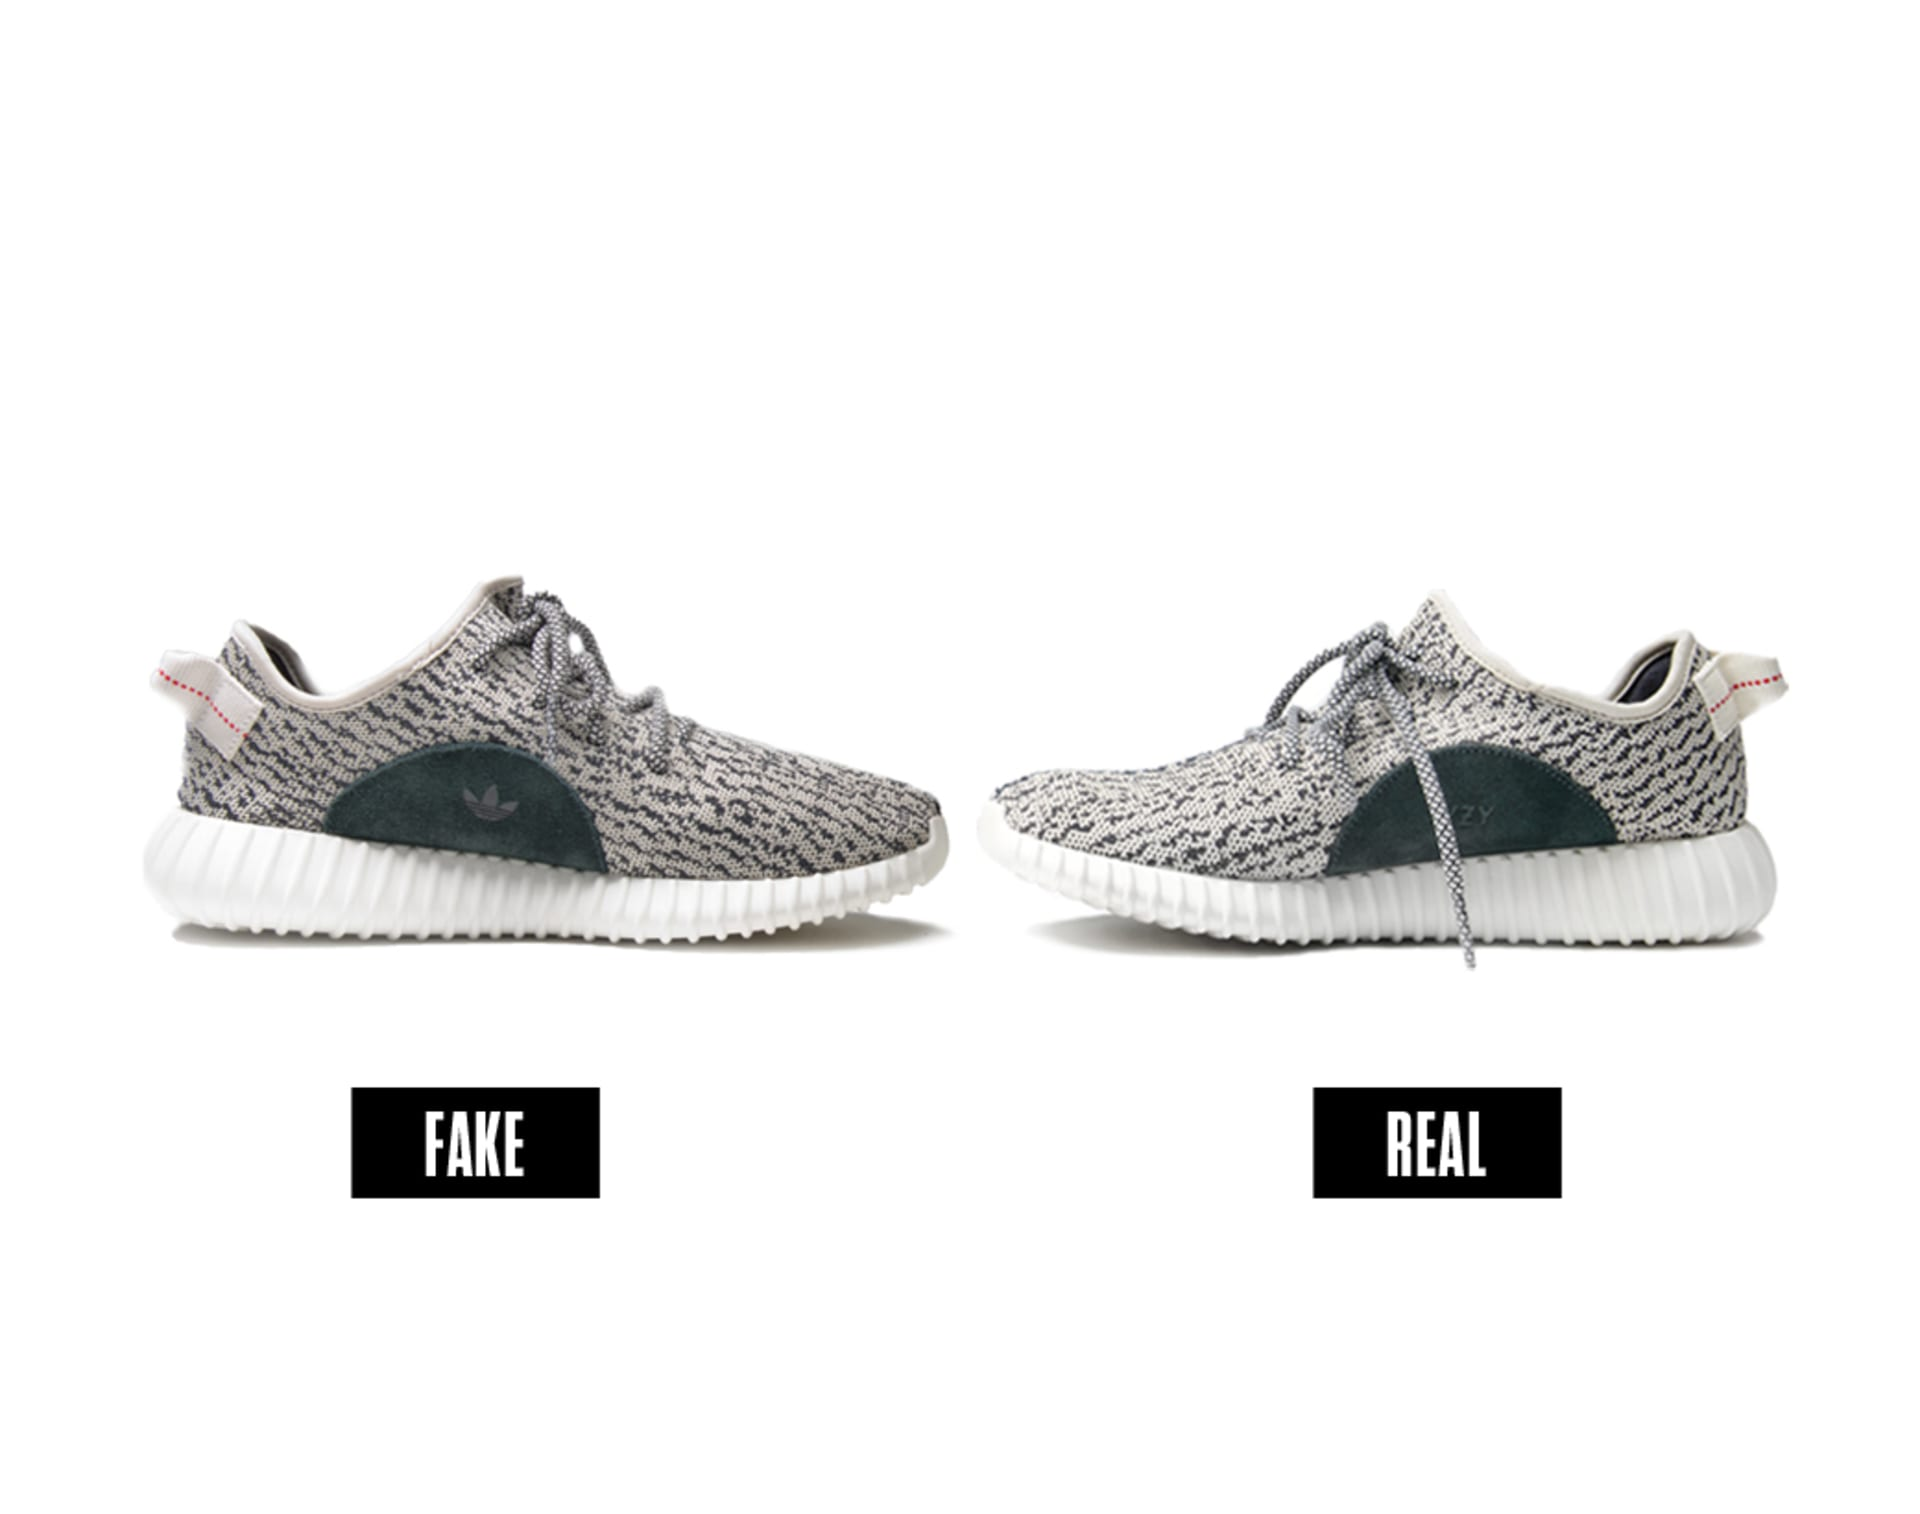 664d2dfb083 Fake vs. Real Yeezy 350 Boosts. Photo by Liz Barclay.